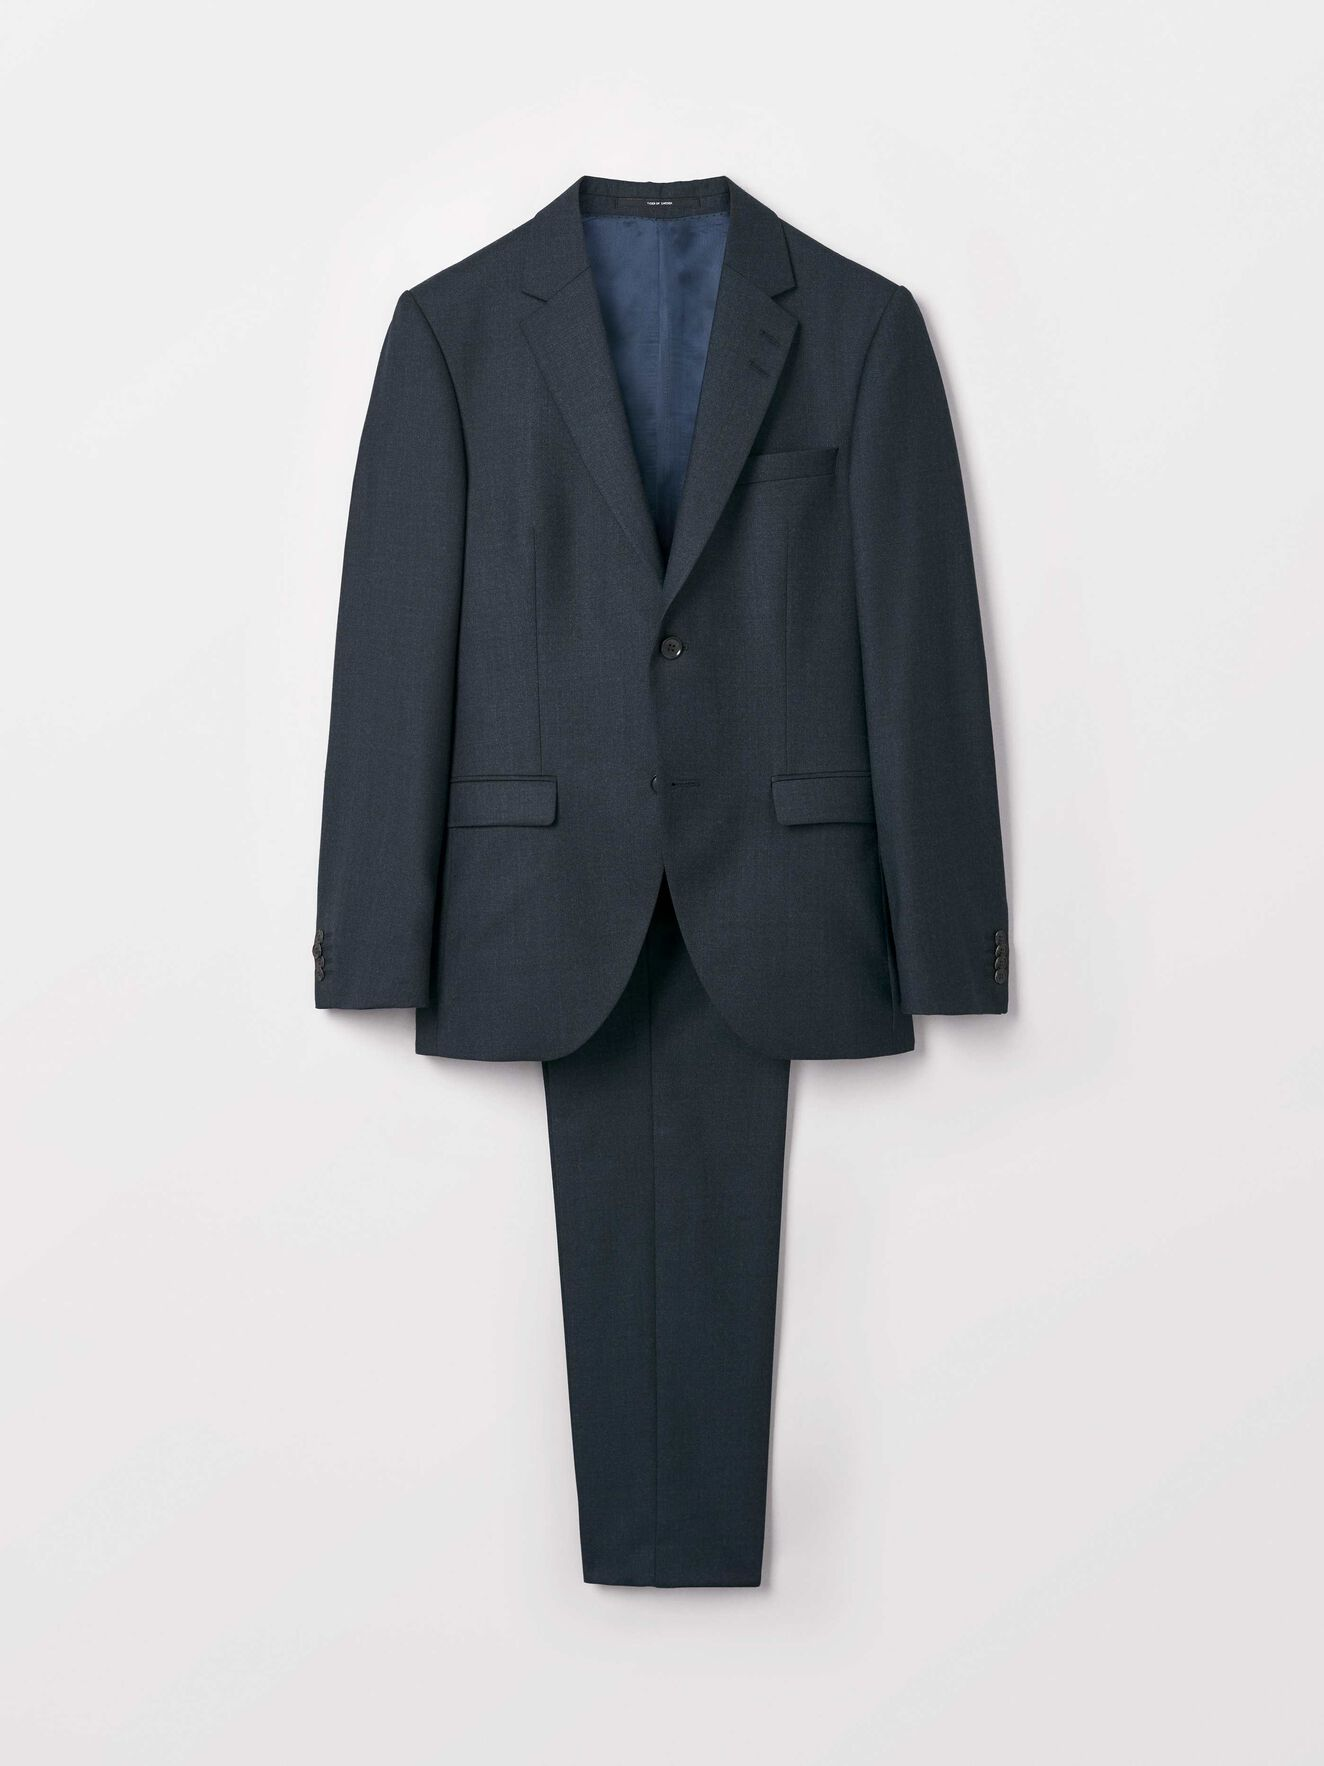 S.Jamonte Suit in Royal Blue from Tiger of Sweden